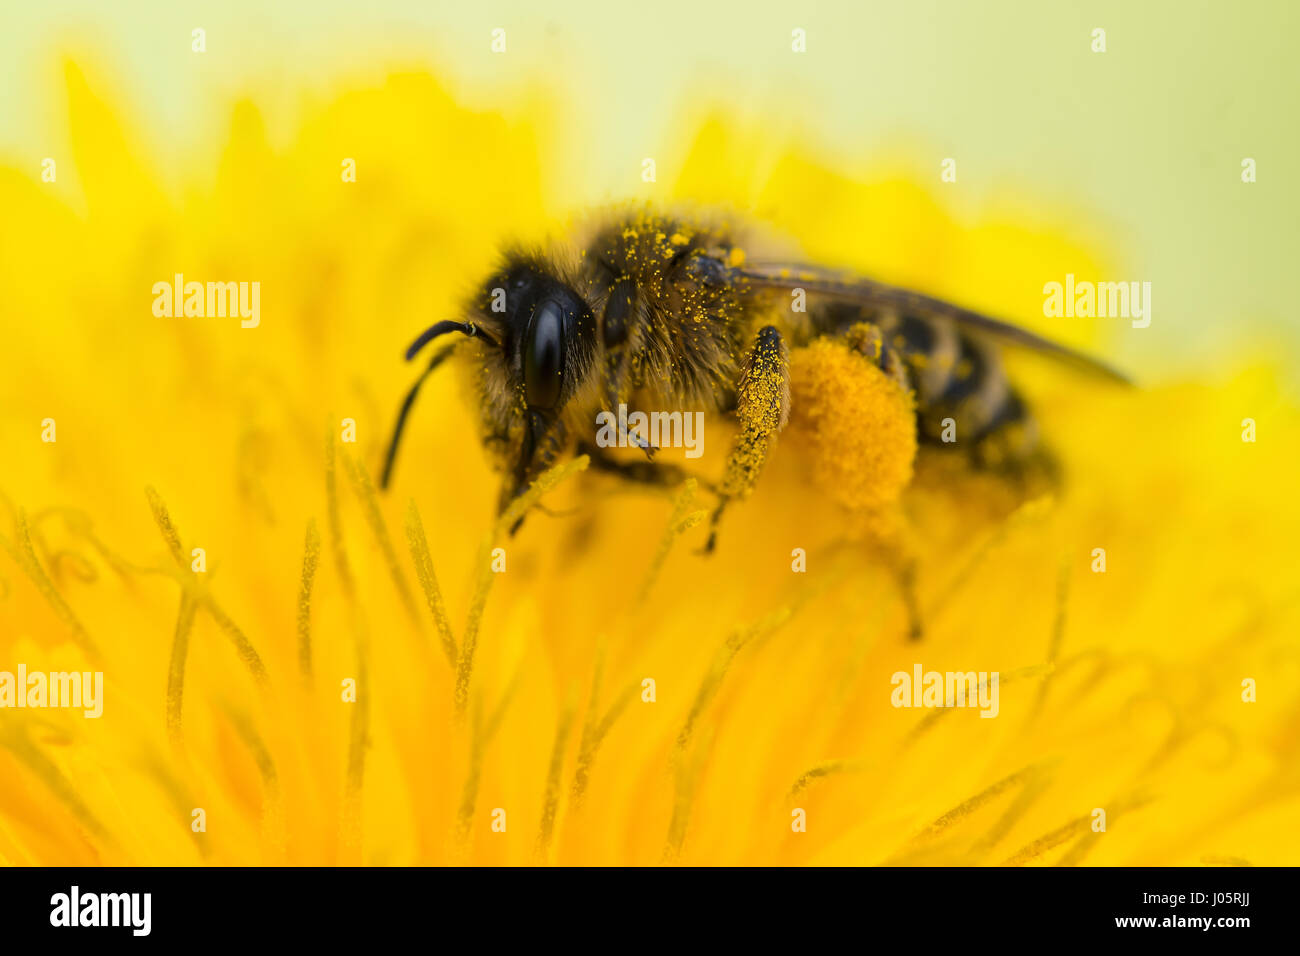 Close up on a honey bee (Apis mellifera) collecting pollen from a dandelion (taraxacum officinale) Stock Photo